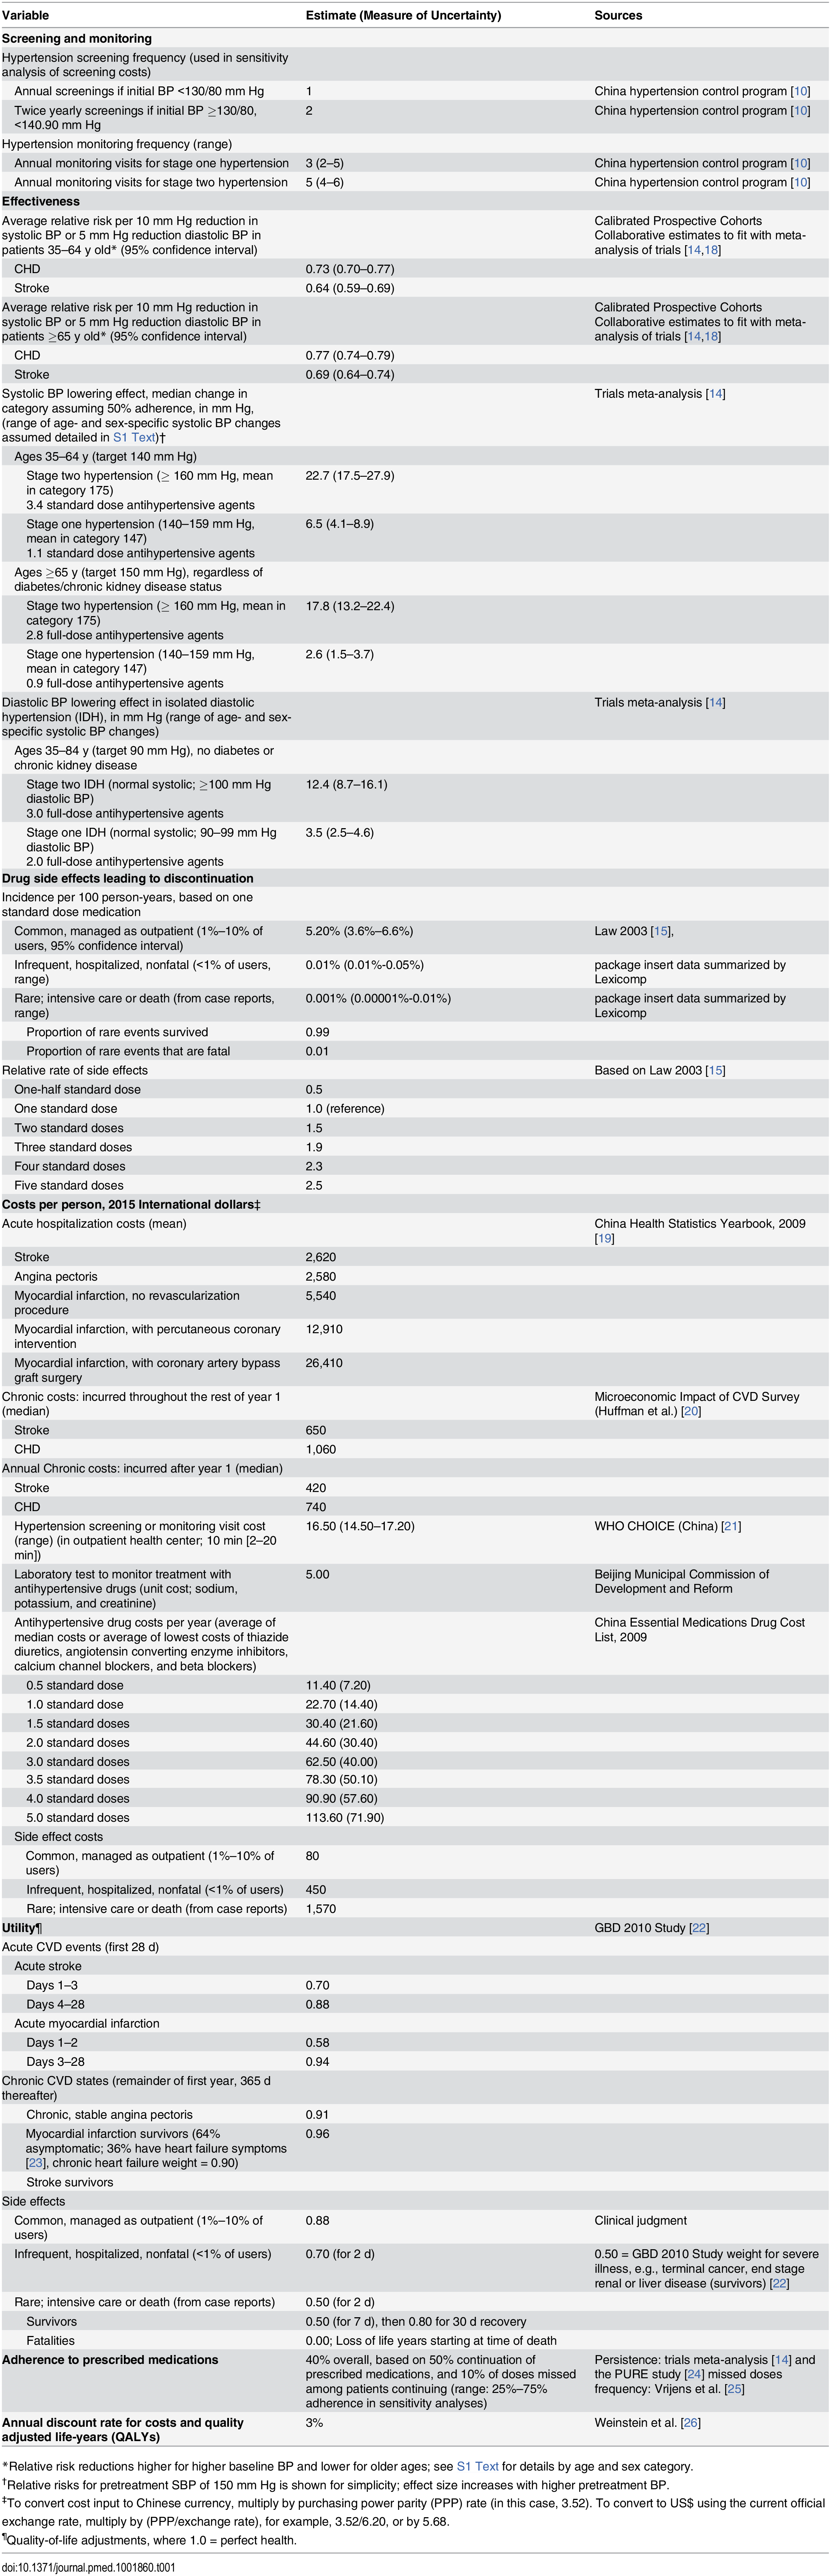 Main assumptions for the cost-effectiveness analysis of China hypertension control policy.